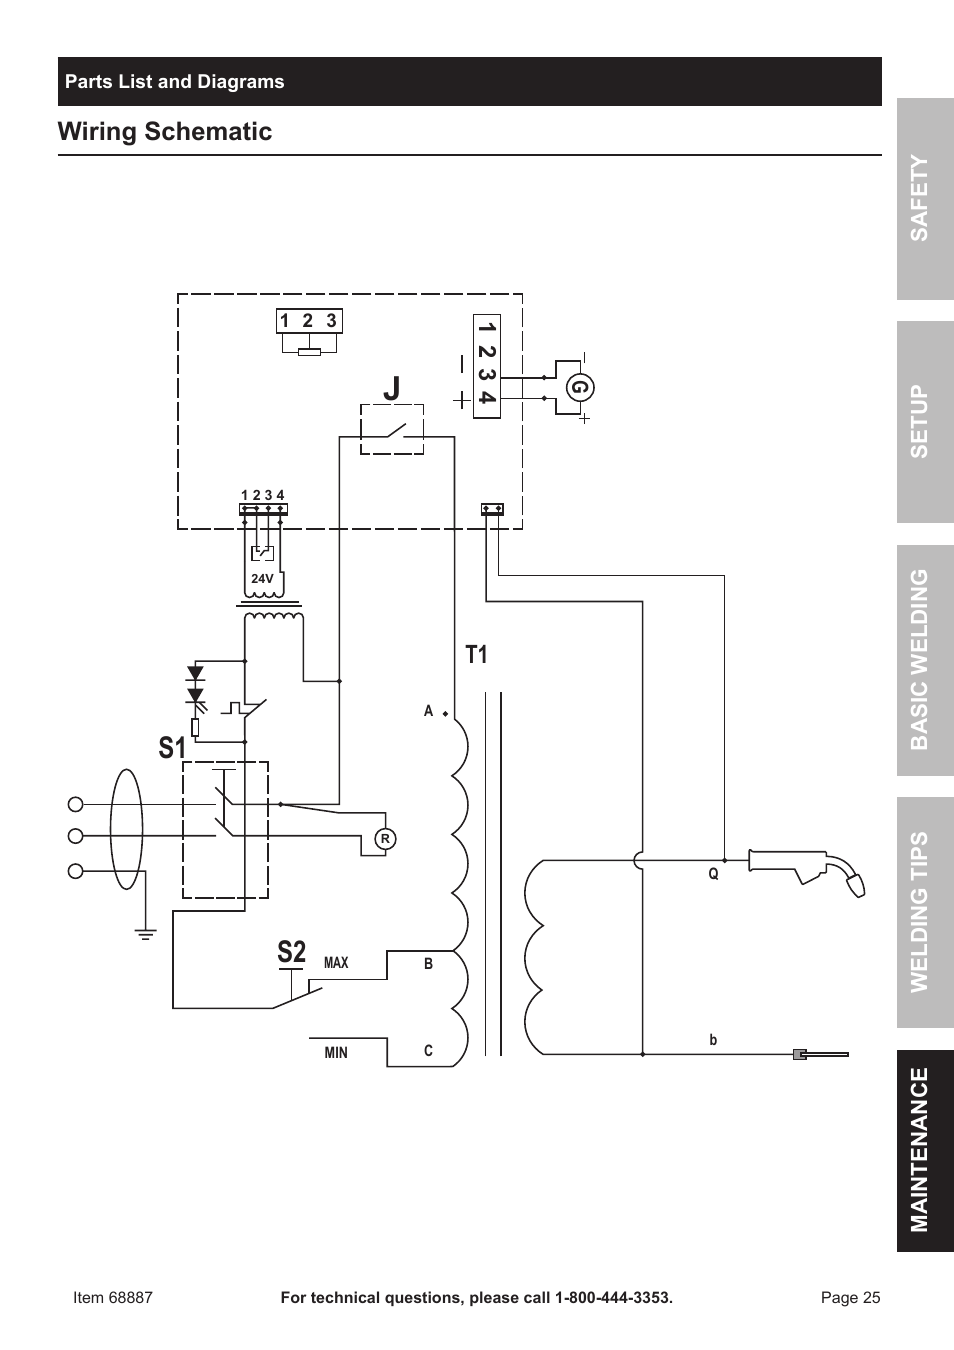 chicago electric 90 amp flux wire welder 68887 page25 s2 s1, wiring schematic chicago electric 90 amp flux wire welder wiring diagram for chicago electric welder at edmiracle.co